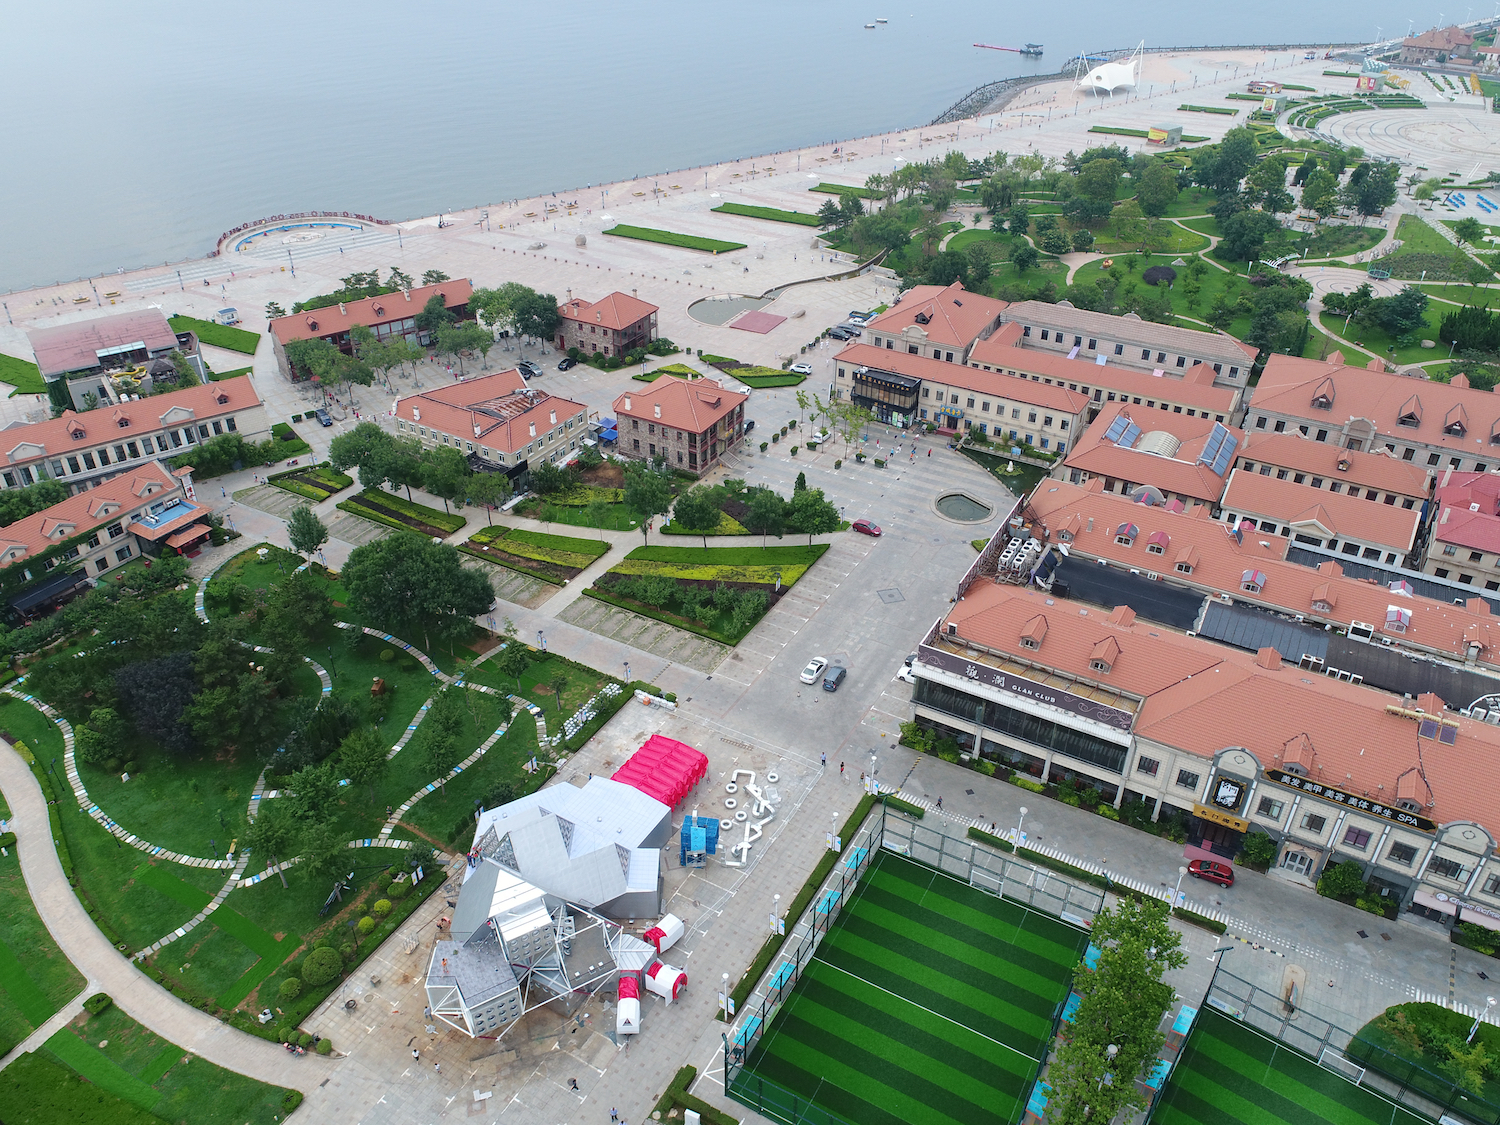 KWAN YEN PROJECT - Cultural and commercial revitalisation of Yantai (Formally Chefoo) waterfront heritage precinct through new cultural programming and business curation.